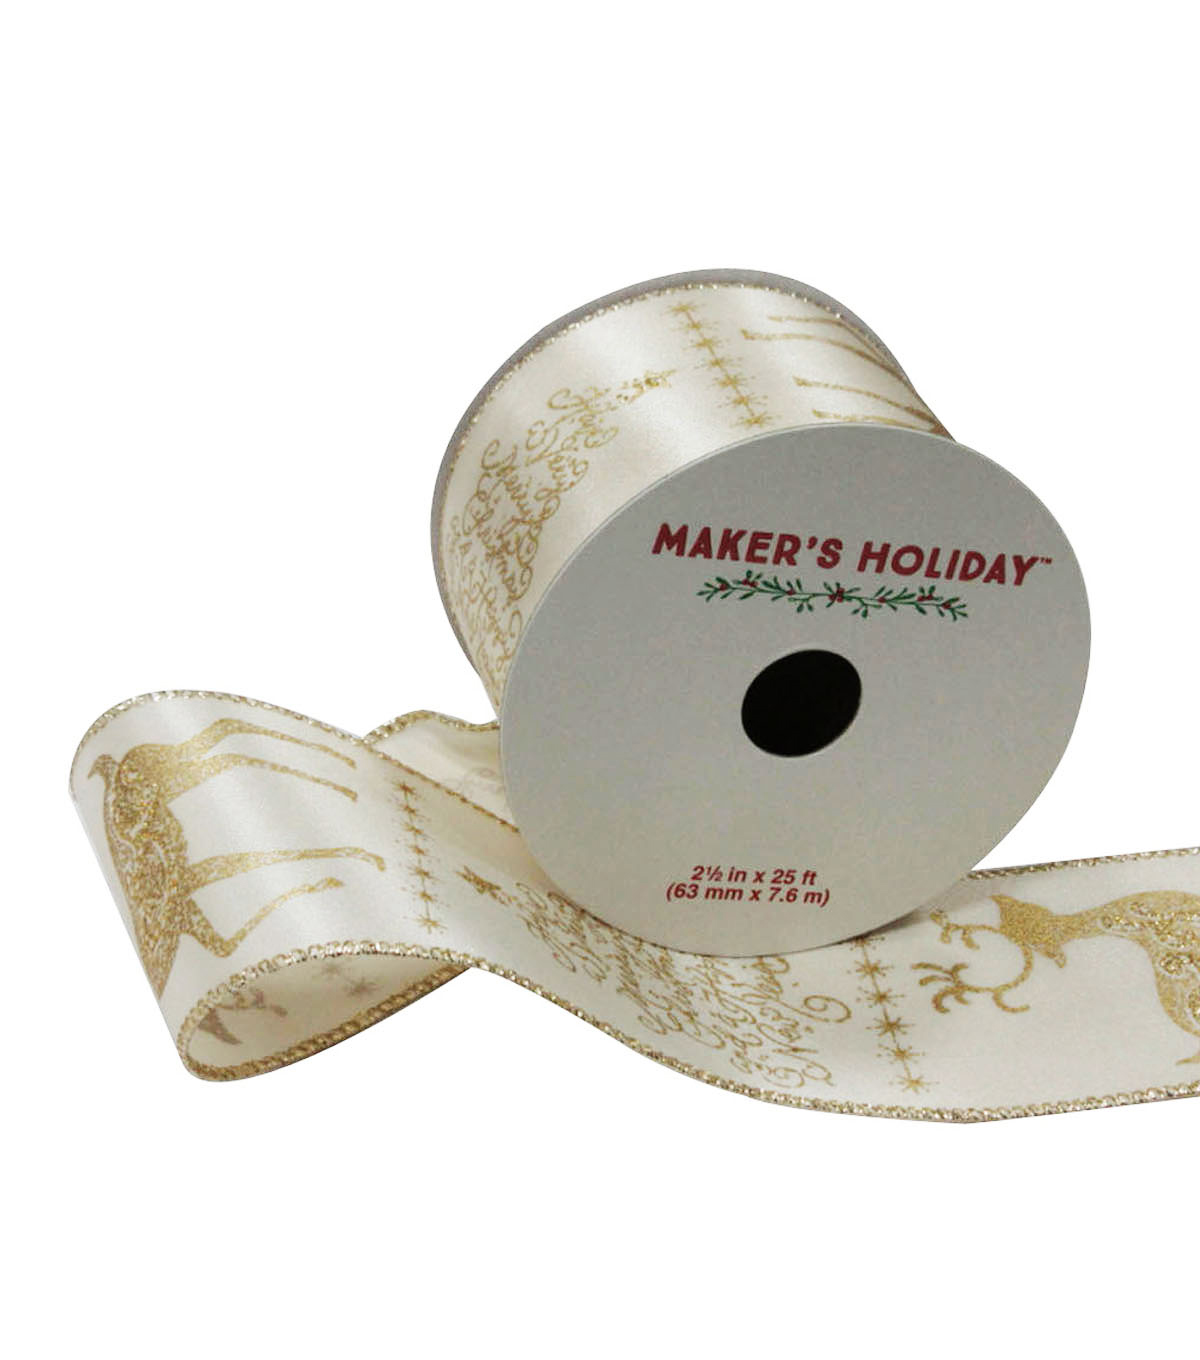 Maker's Holiday Satin Ribbon 2.5''x25'-Brown & Cream Deer